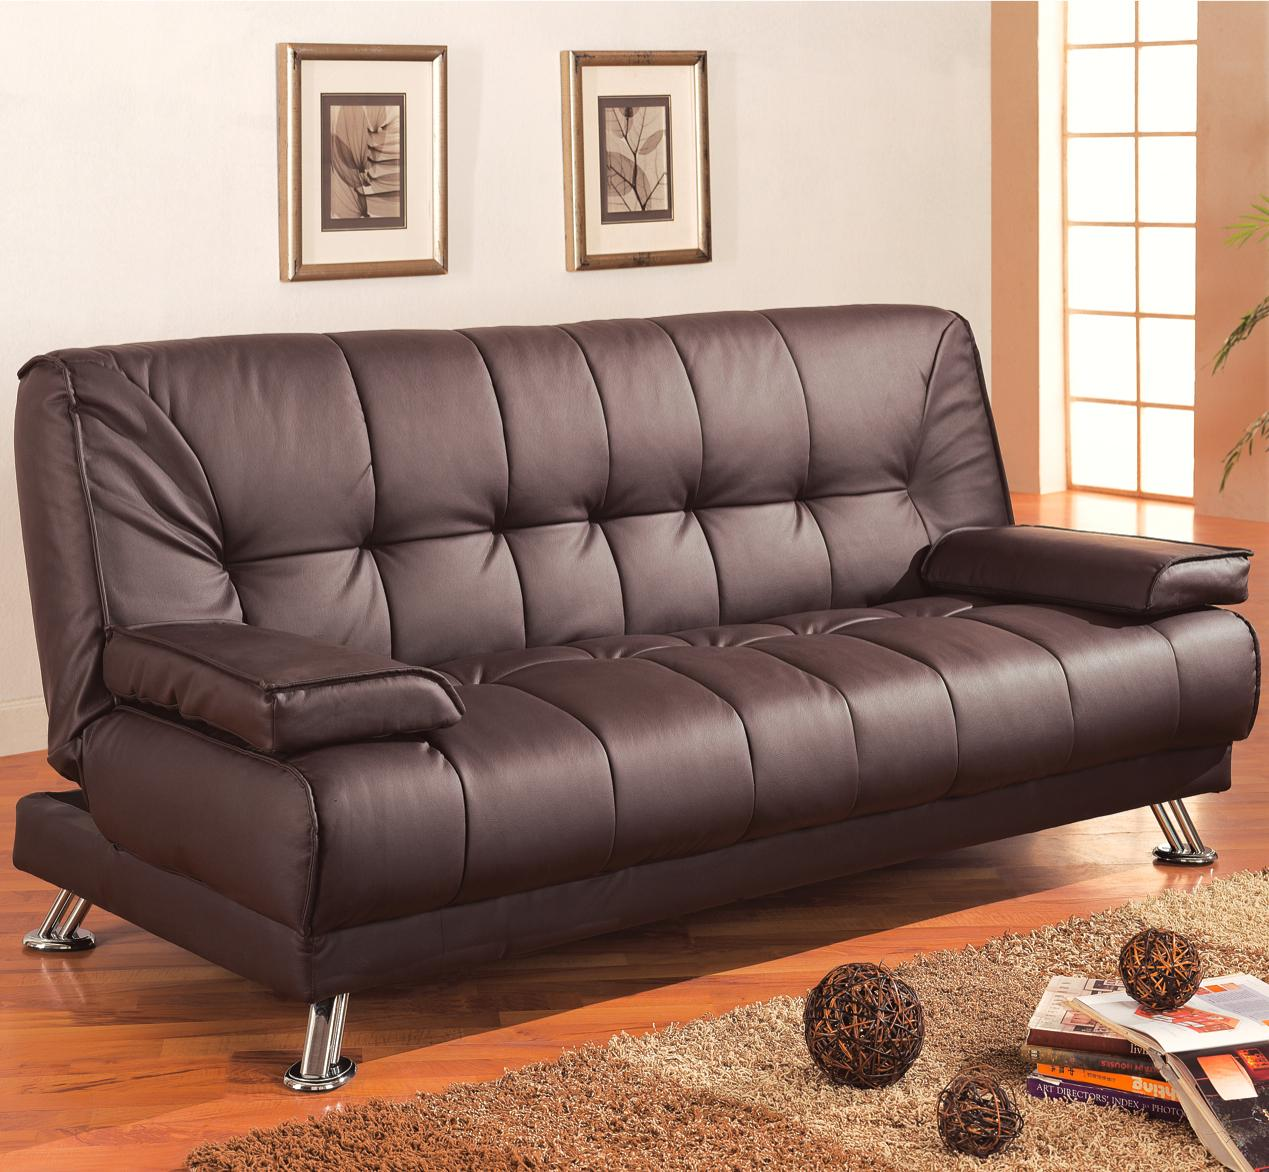 Coaster Sofa Beds And Futons Faux Leather Convertible Sofa Bed With Removable Armrests A1 Furniture Mattress Futons